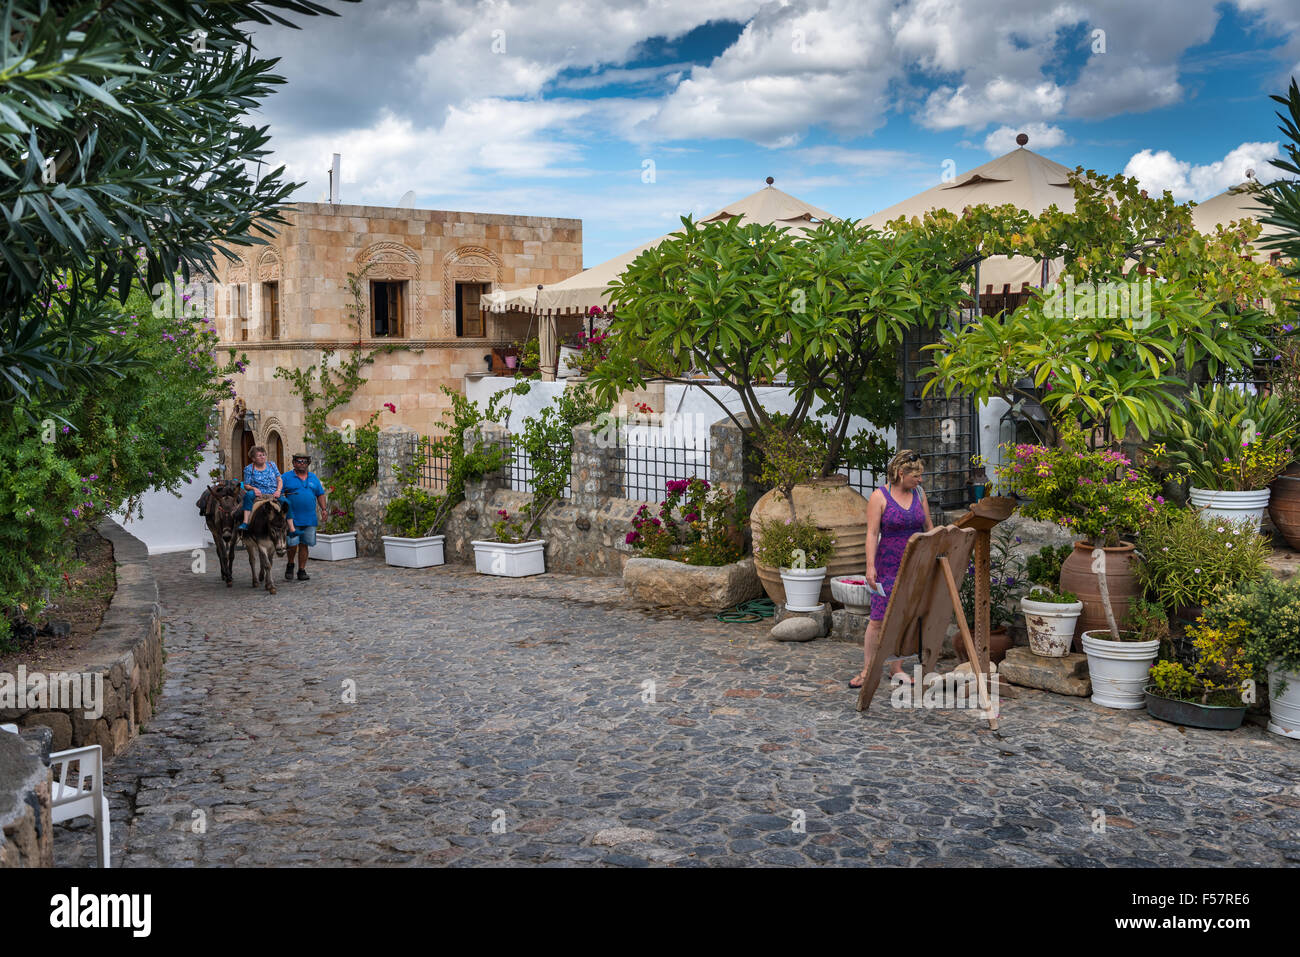 The town of Lindos on the Greek island of Rhodes. - Stock Image